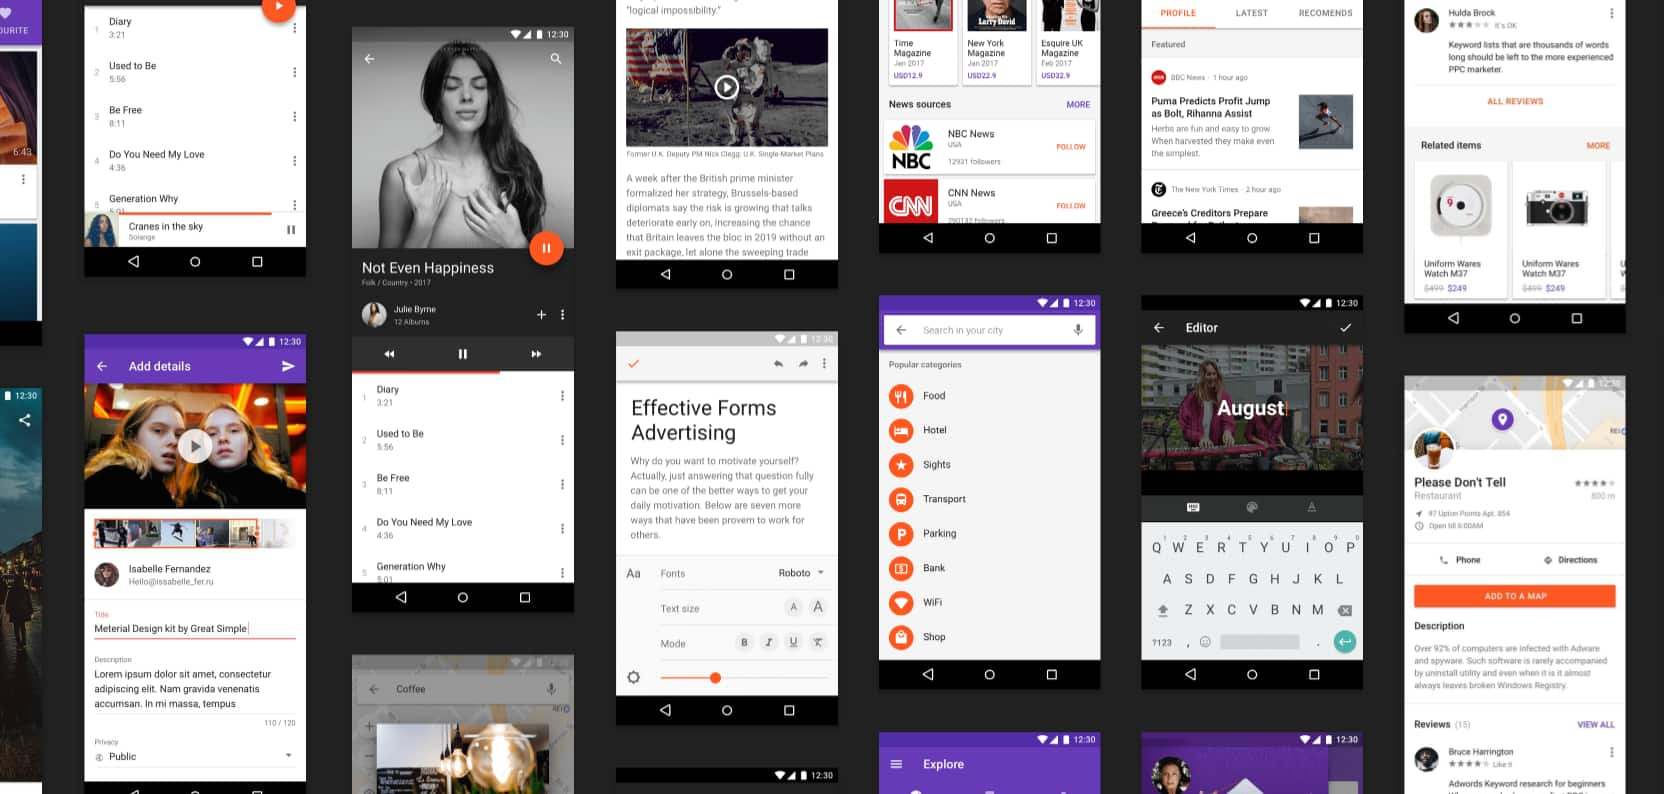 Android app UI kit free download. Material design UI kit free with GUI components designed according to human interface guidelines. Free to download